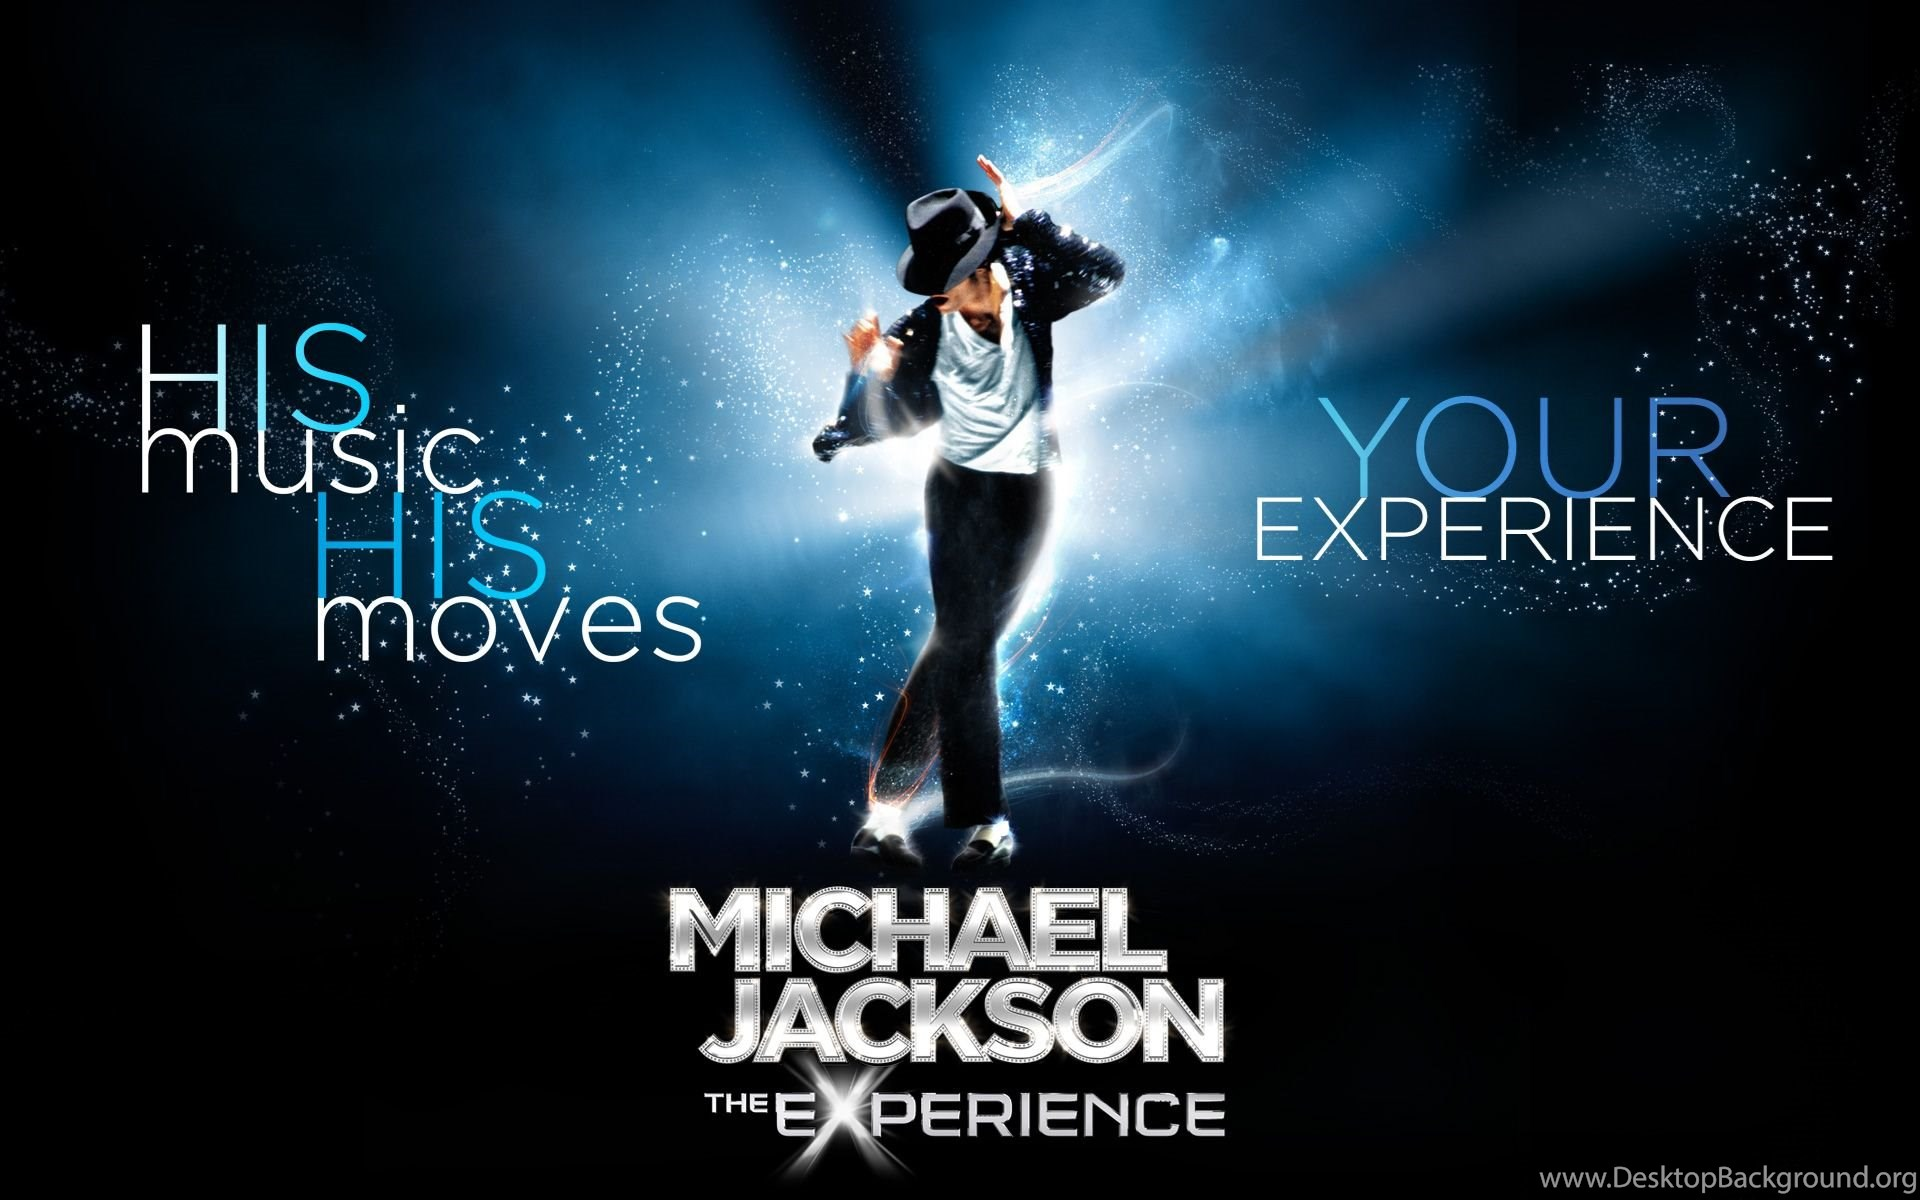 Michael Jackson Hd Wallpapers Hd Wallpaper Backgrounds Of Your